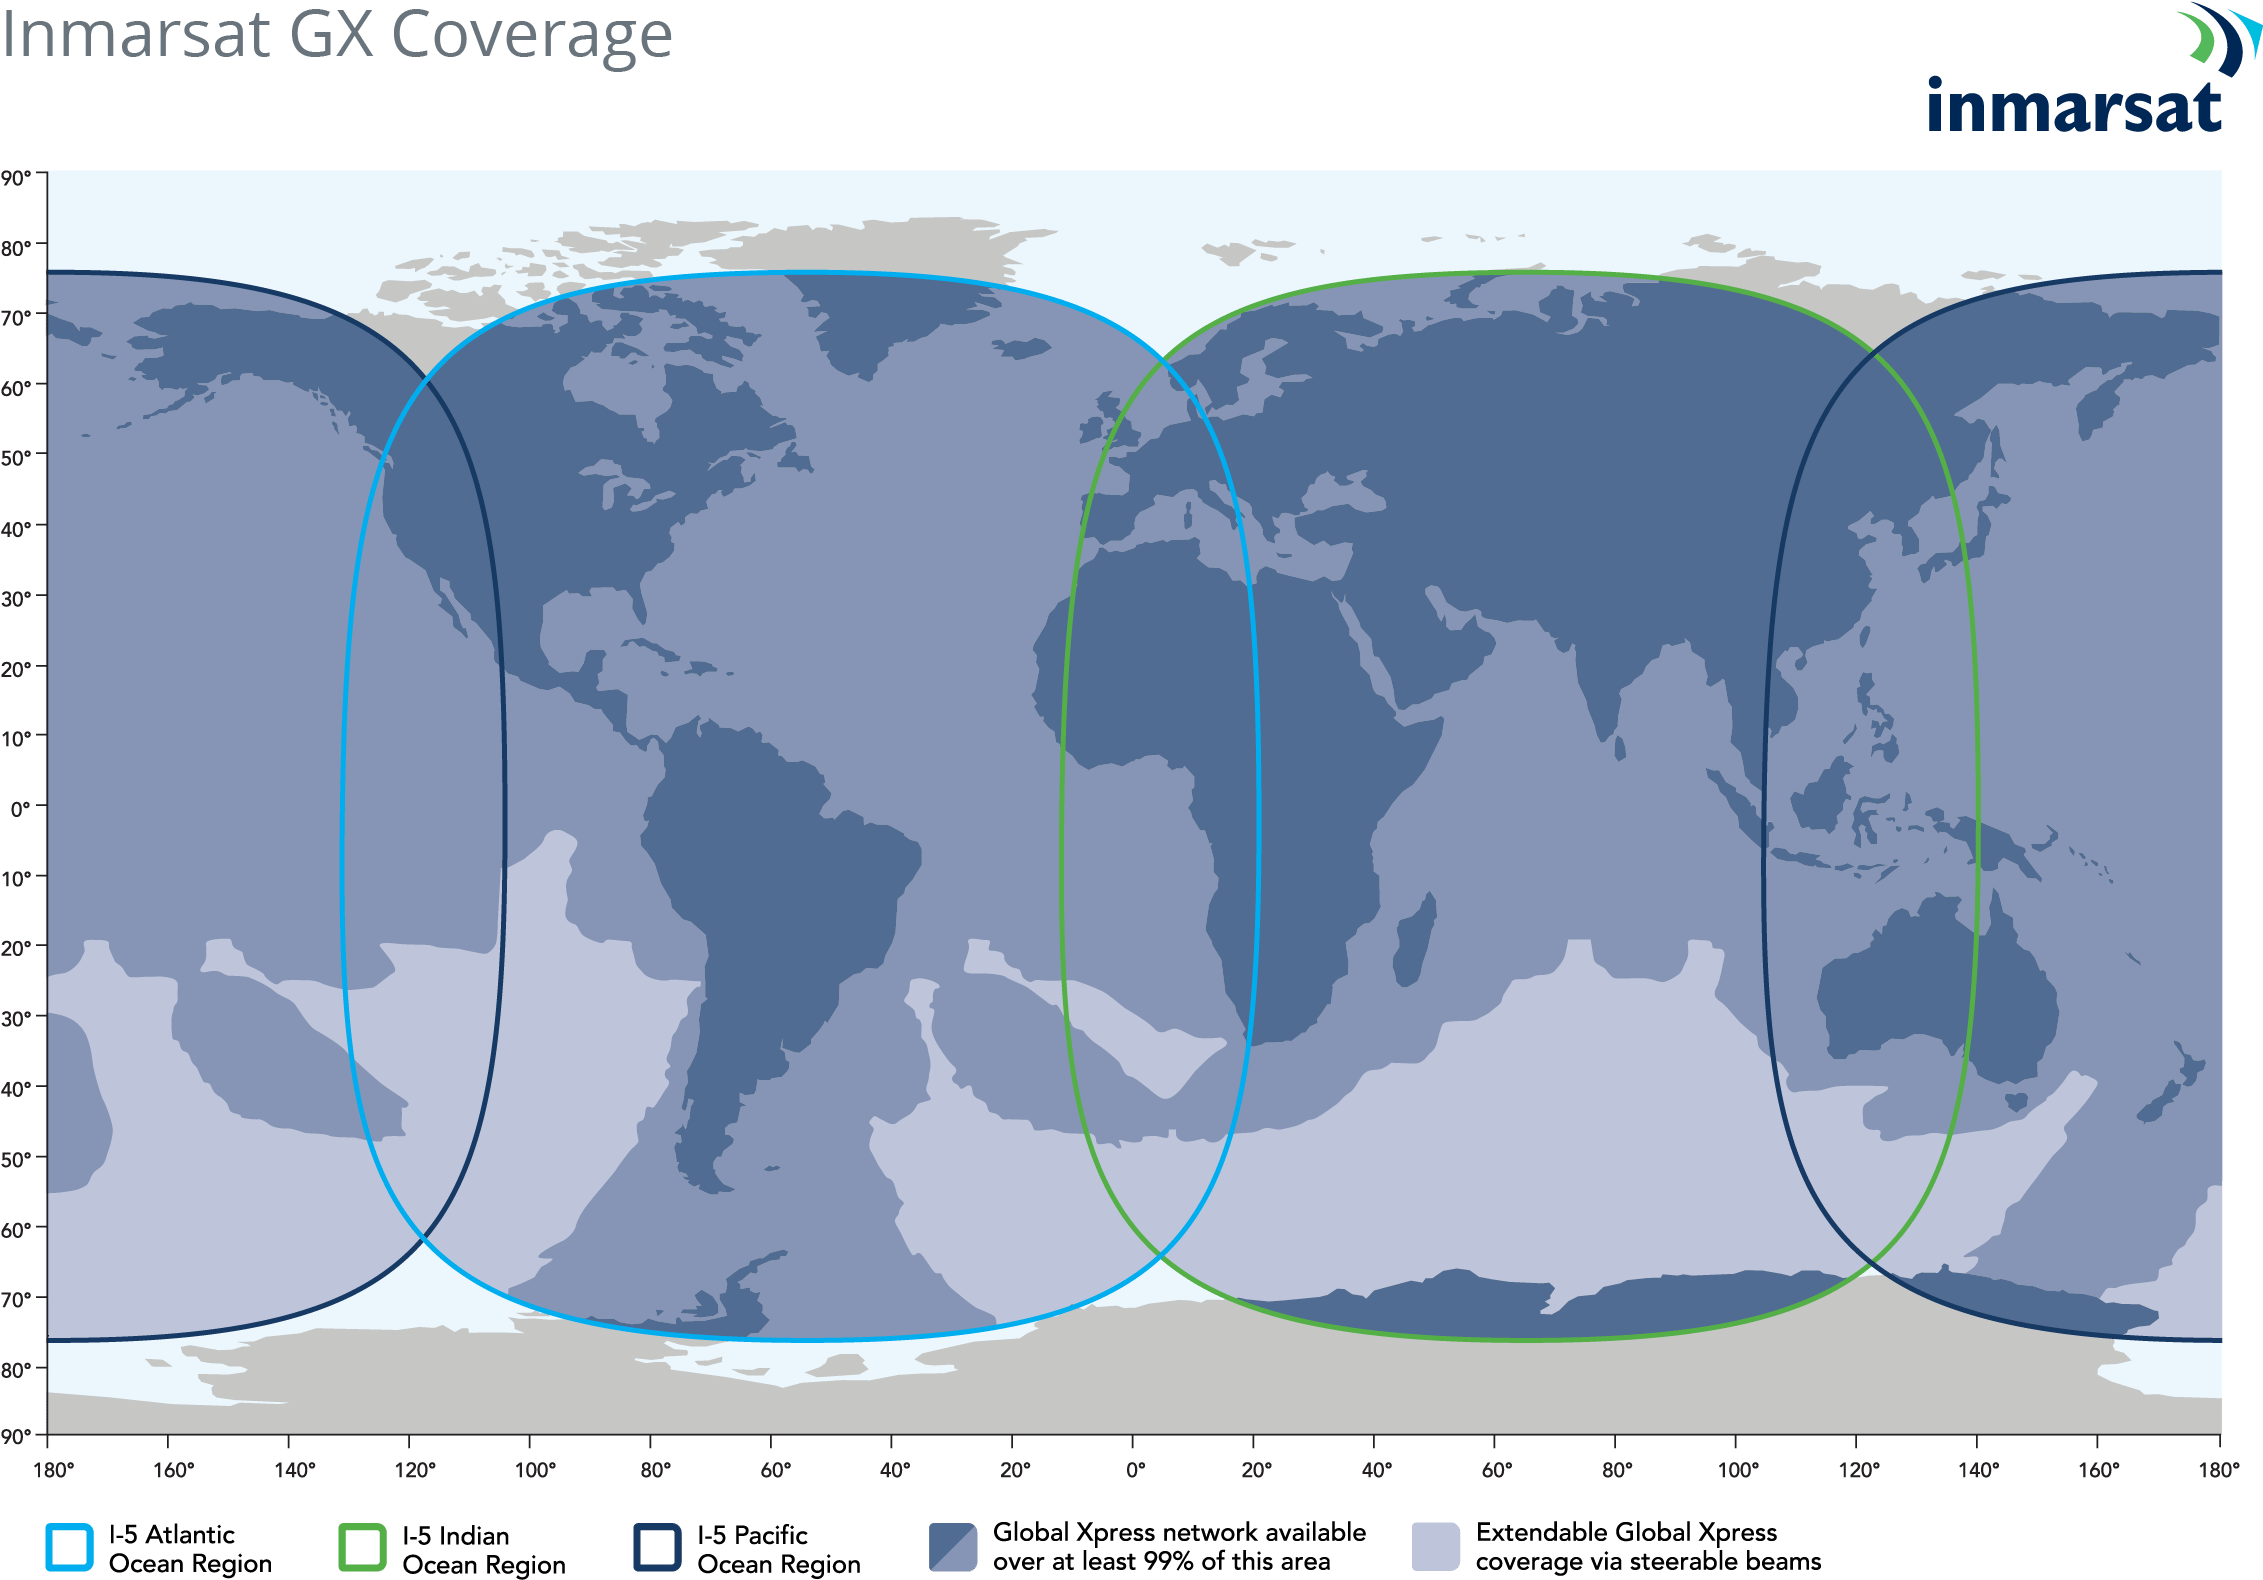 Inmarsat's GX Coverage Map for the Jet Connex in-flight connectivity system